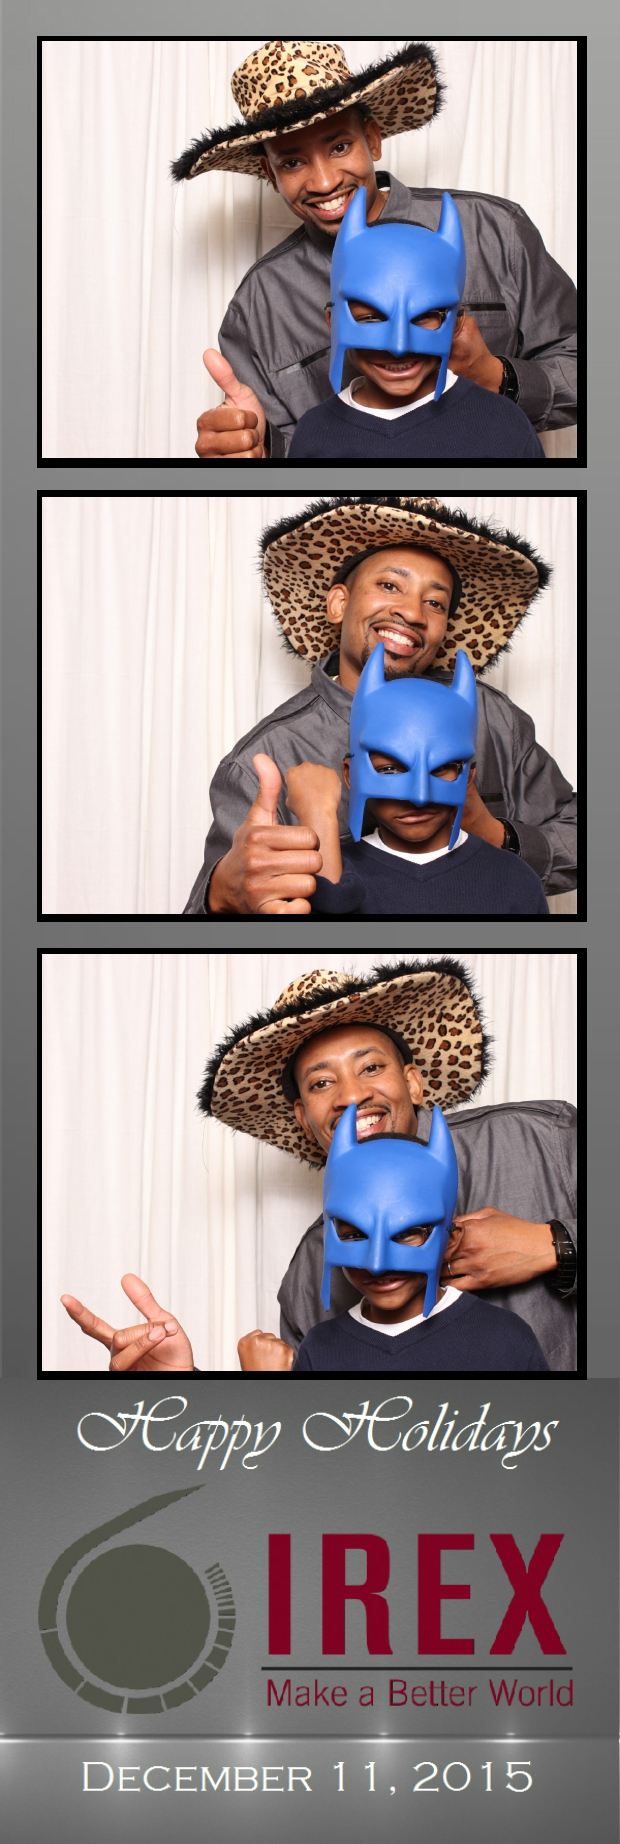 Guest House Events Photo Booth Strips IREX (73).jpg